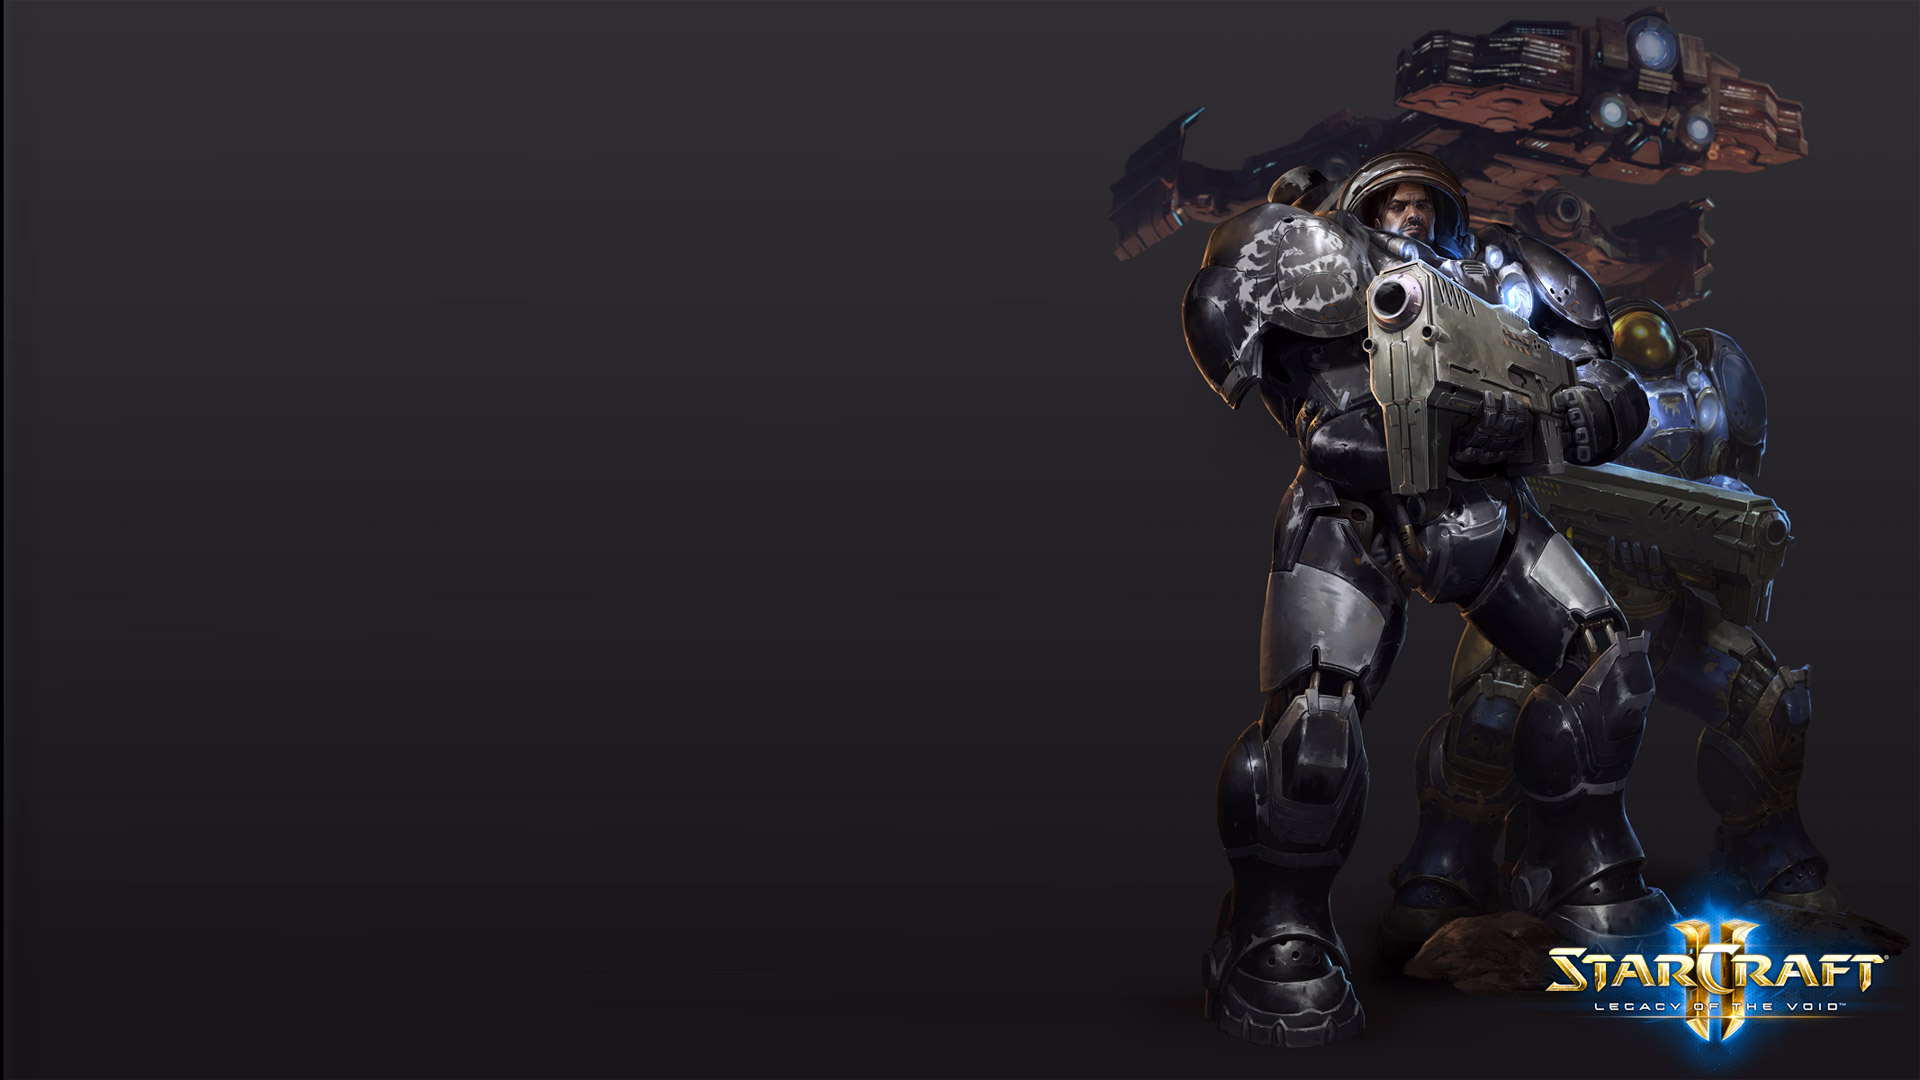 Free Starcraft 2 Wallpaper in 1920x1080